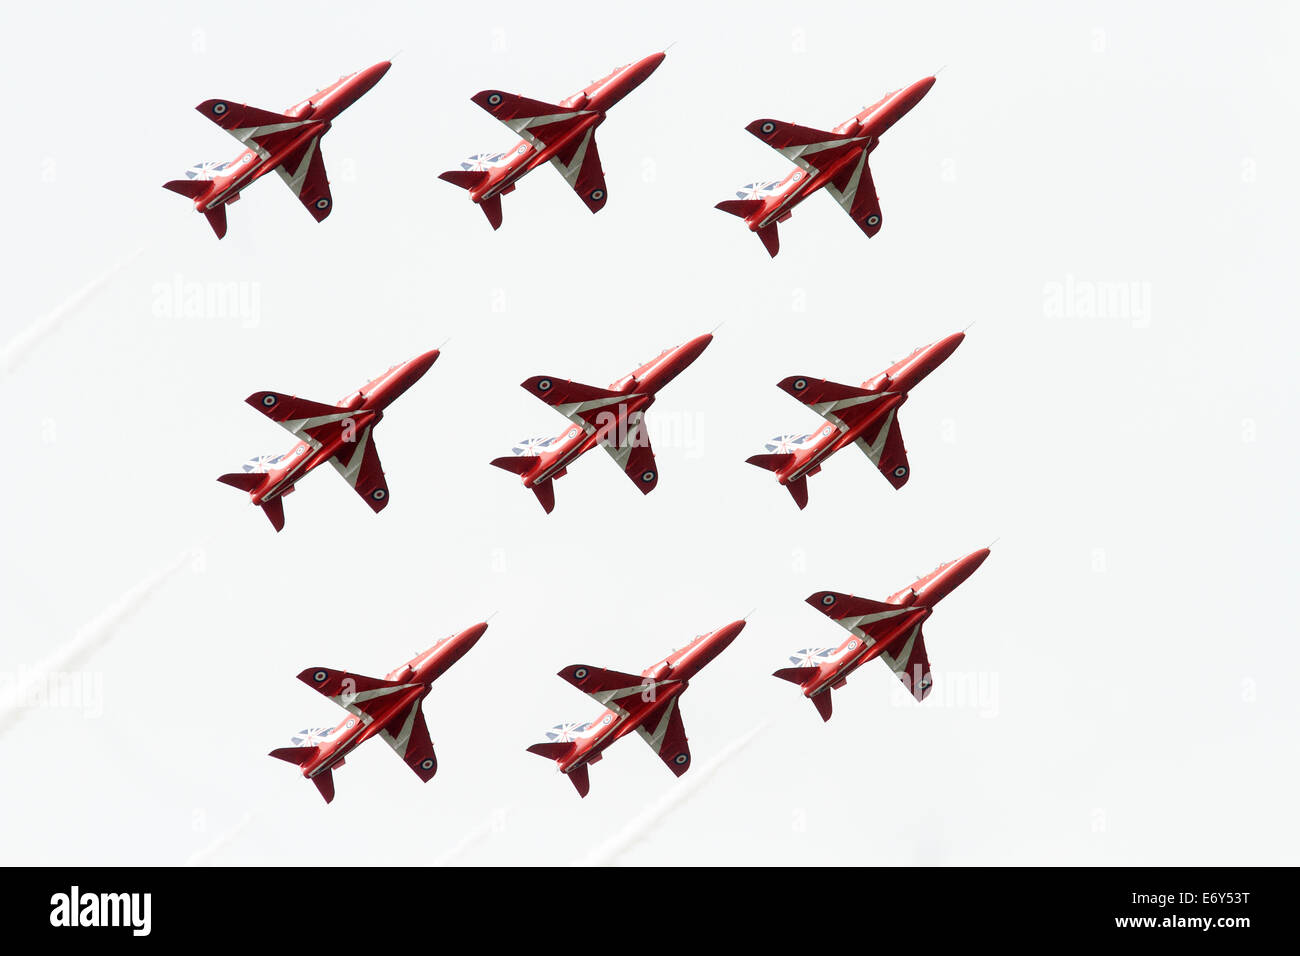 The RAF Aerobatic Team, The Red Arrows, is one of the world's premier aerobatic display teams, Hawk Jets, RAF - Stock Image